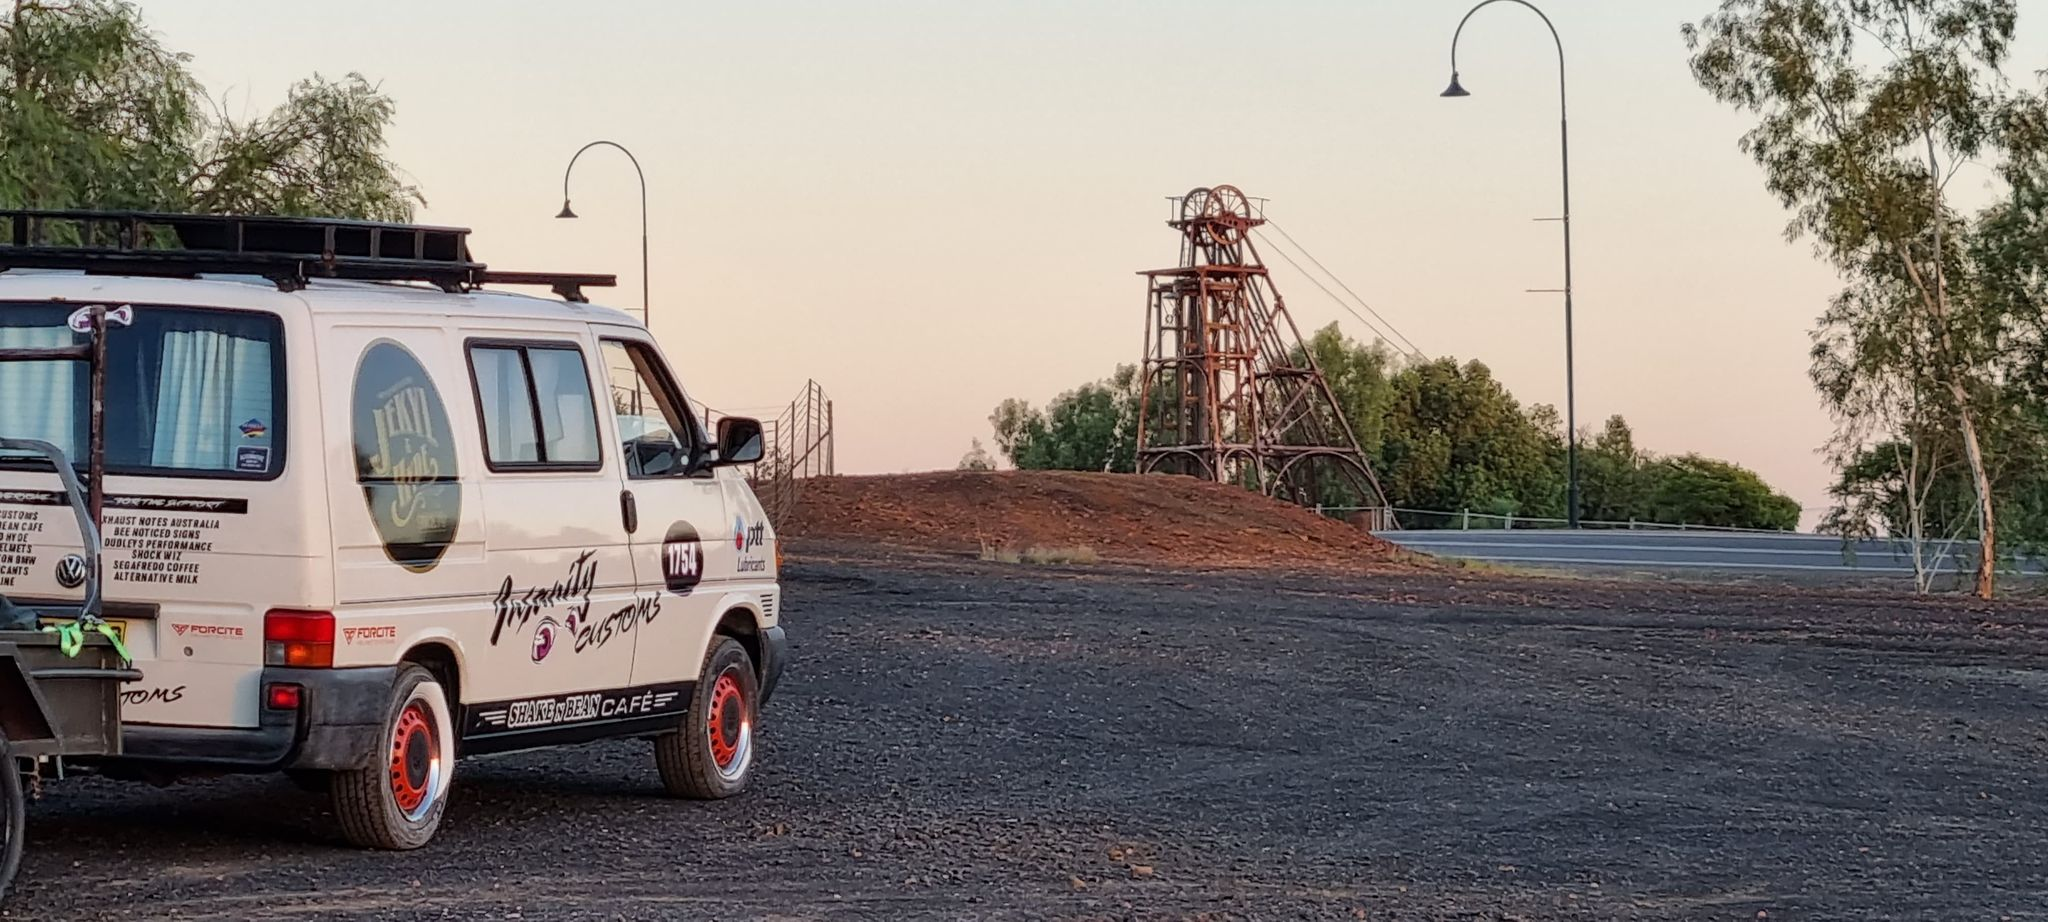 On route to the salt flats of Lake Gairdner in South Australia